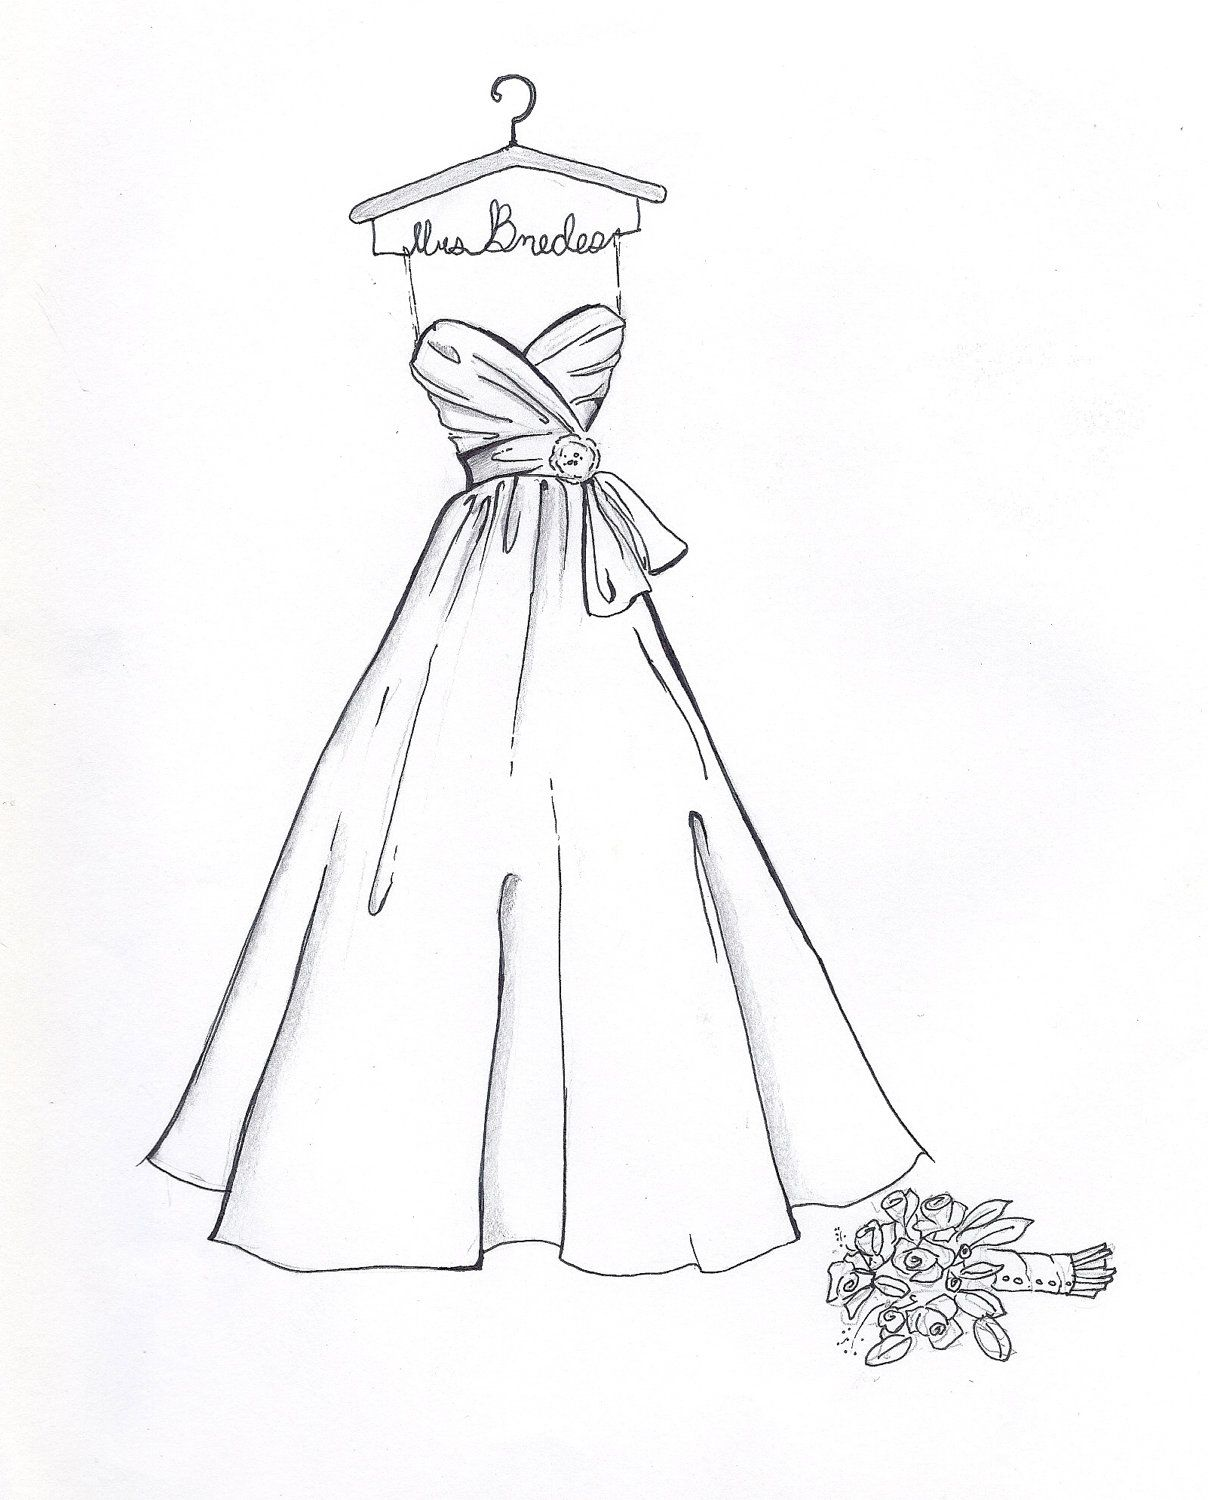 custom wedding dress sketch by drawthedress on etsy 50 00 mode